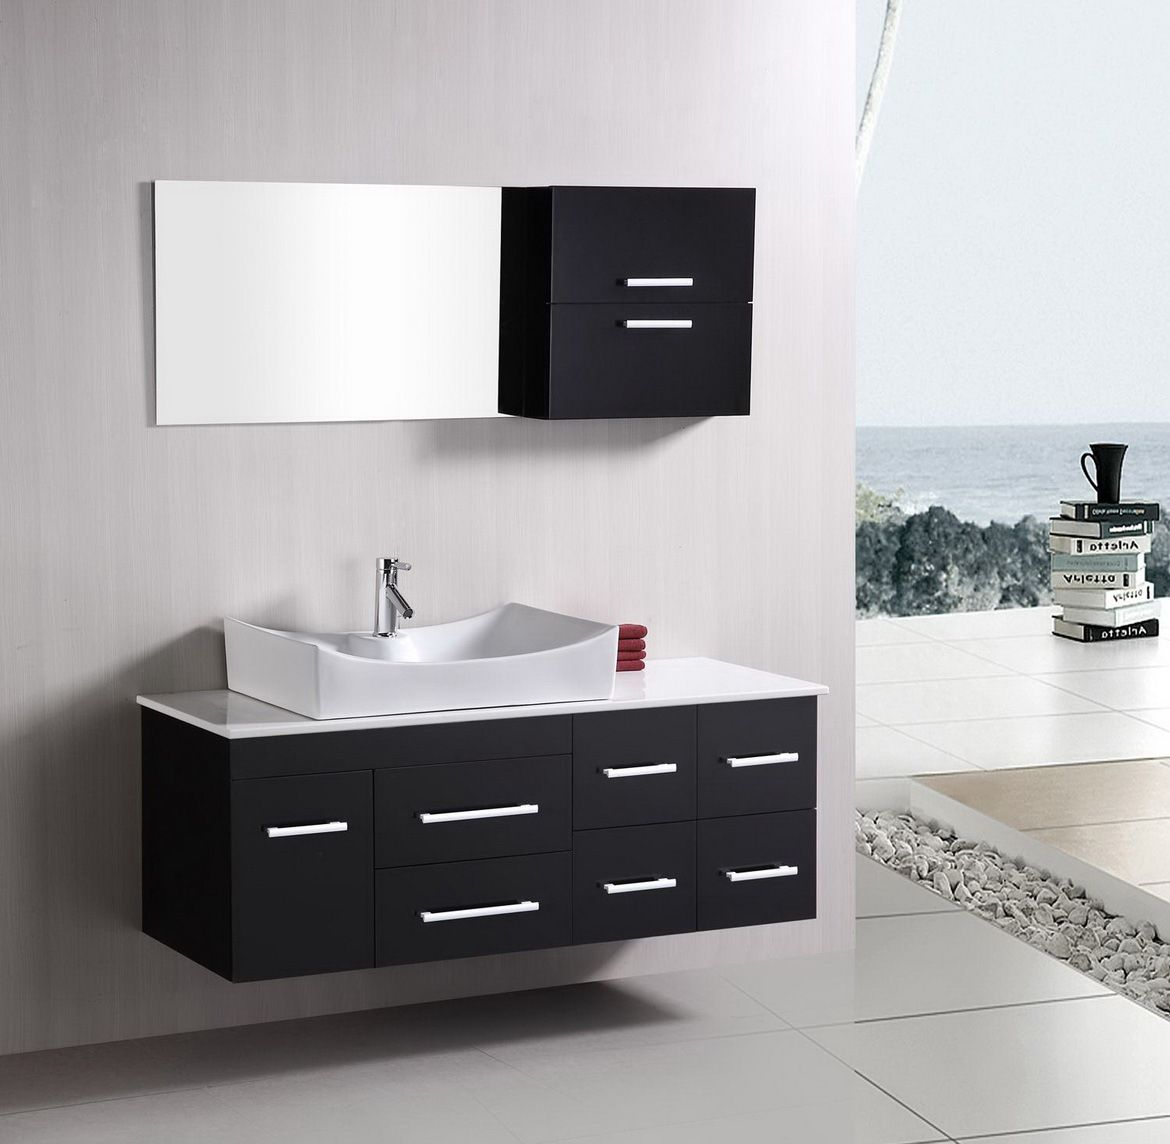 Small Contemporary Bathroom Vanities Design Ideas For The House Pinterest Contemporary